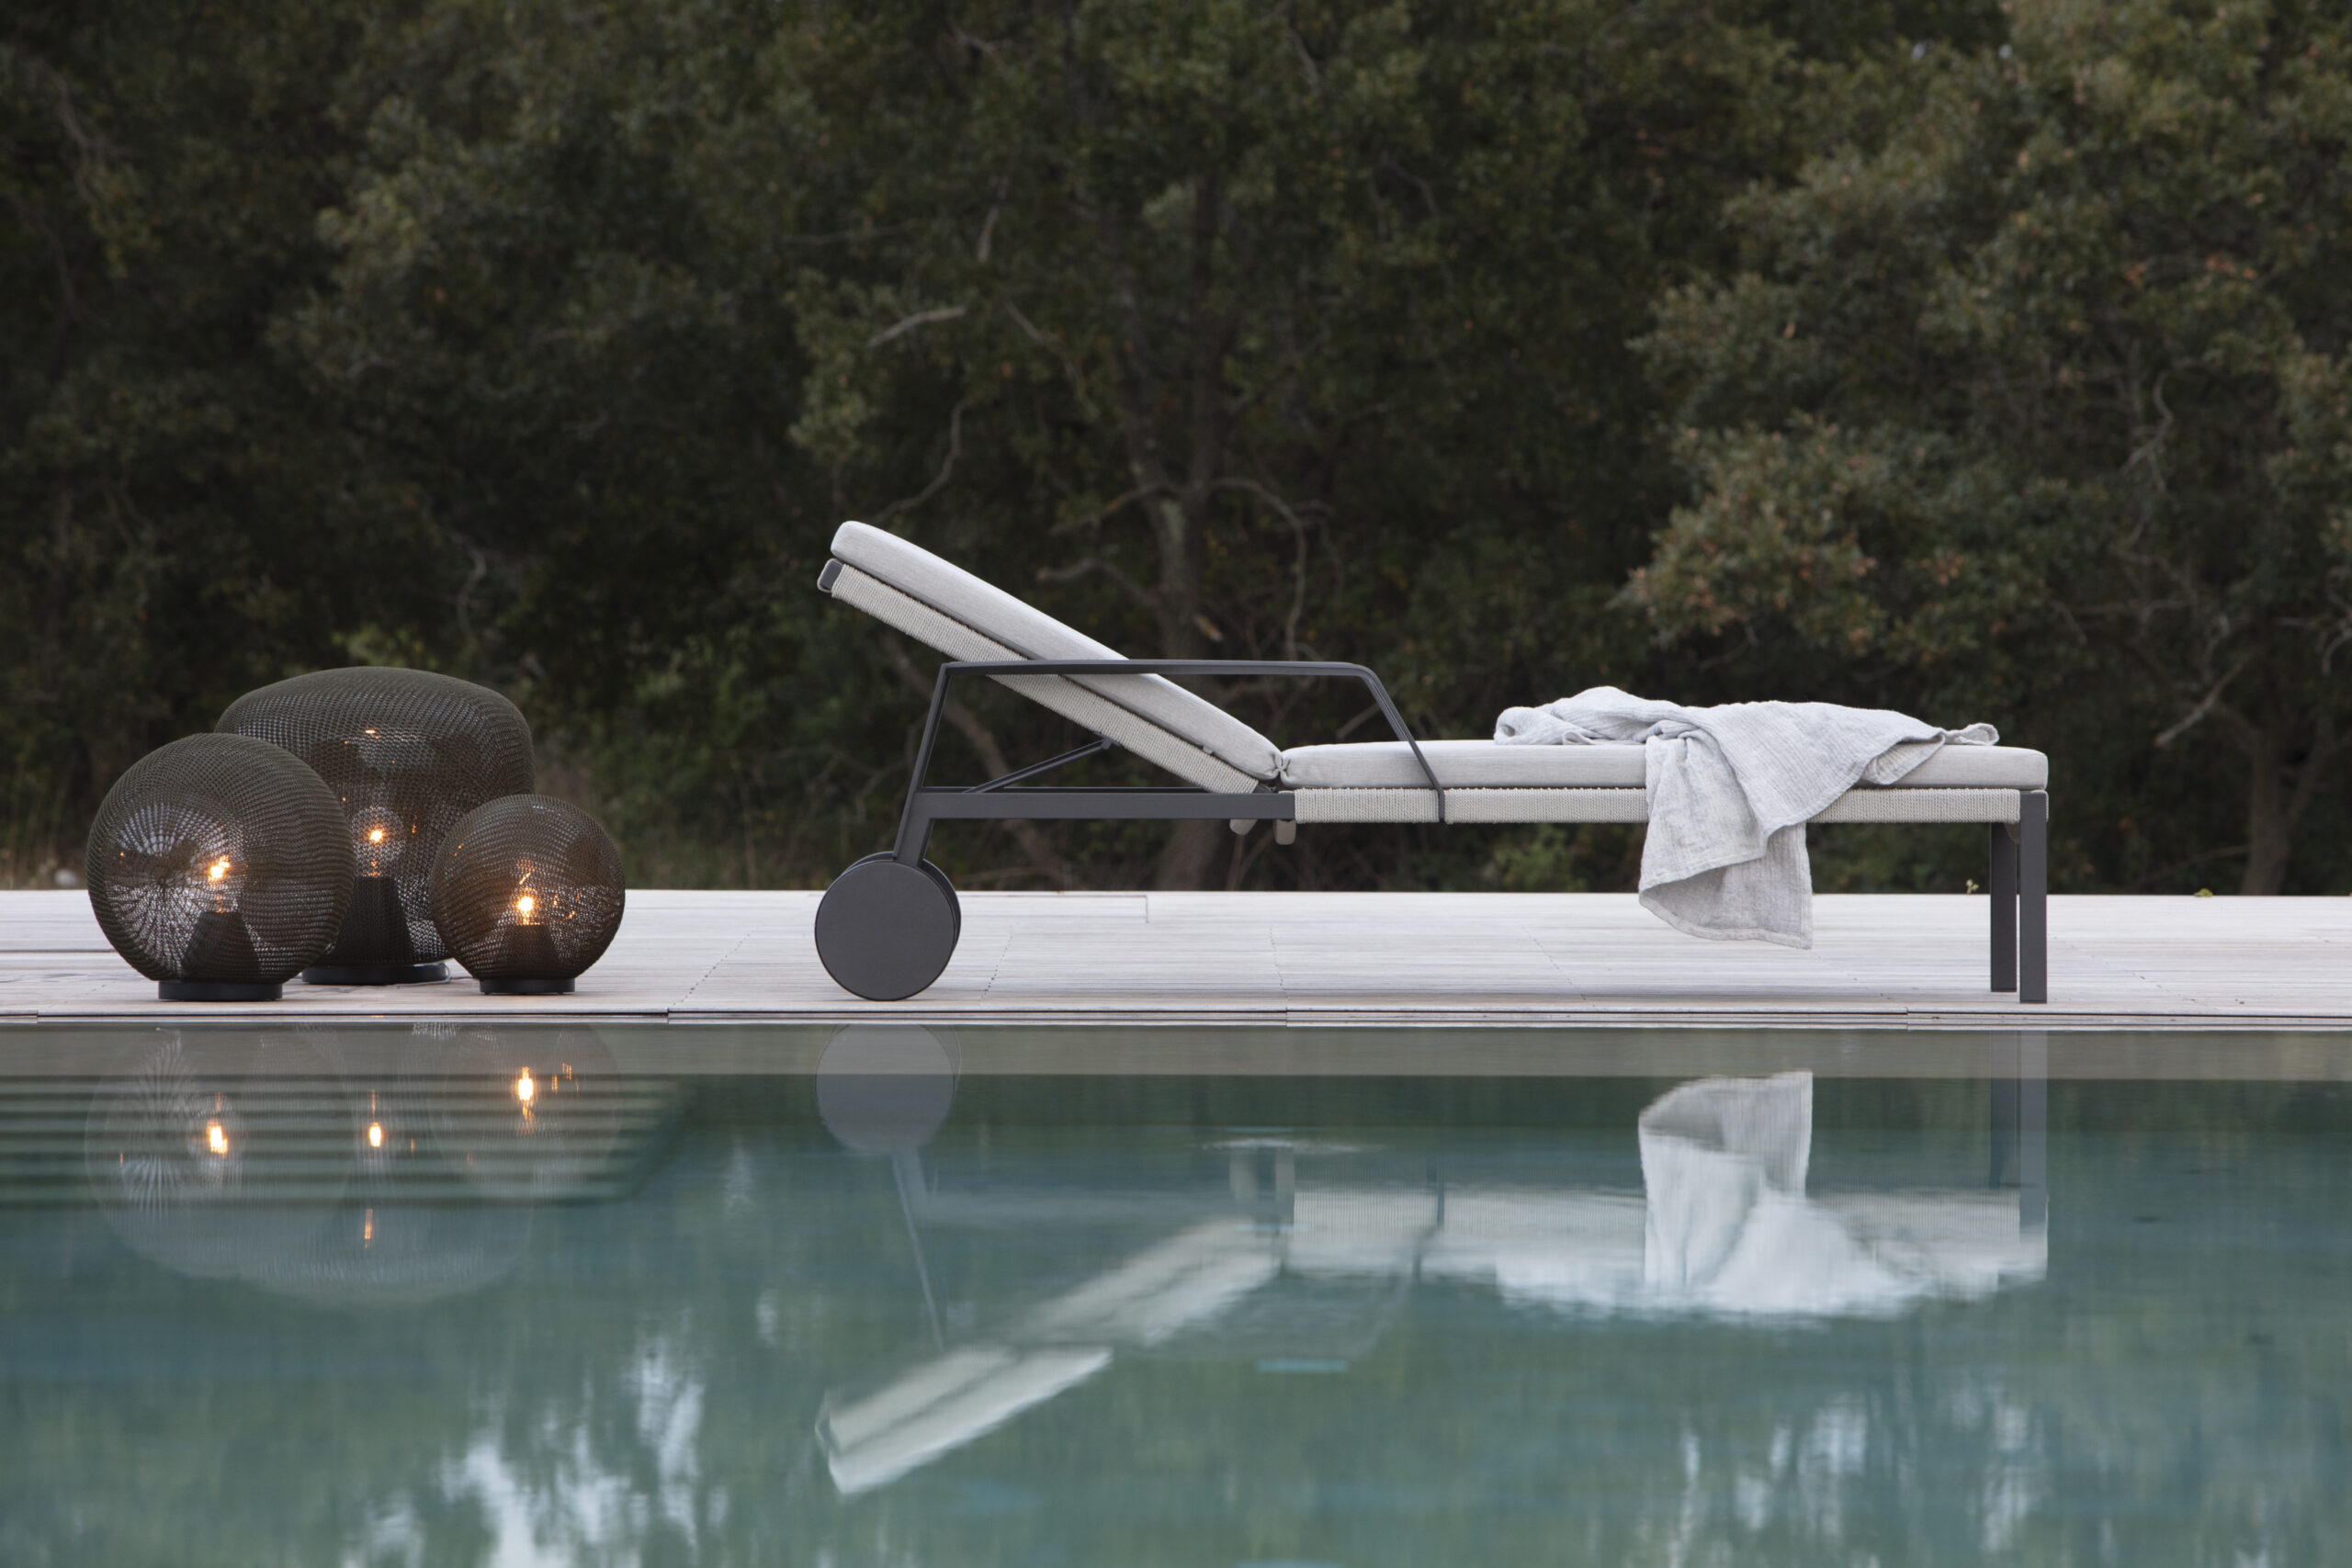 lounger by the pool